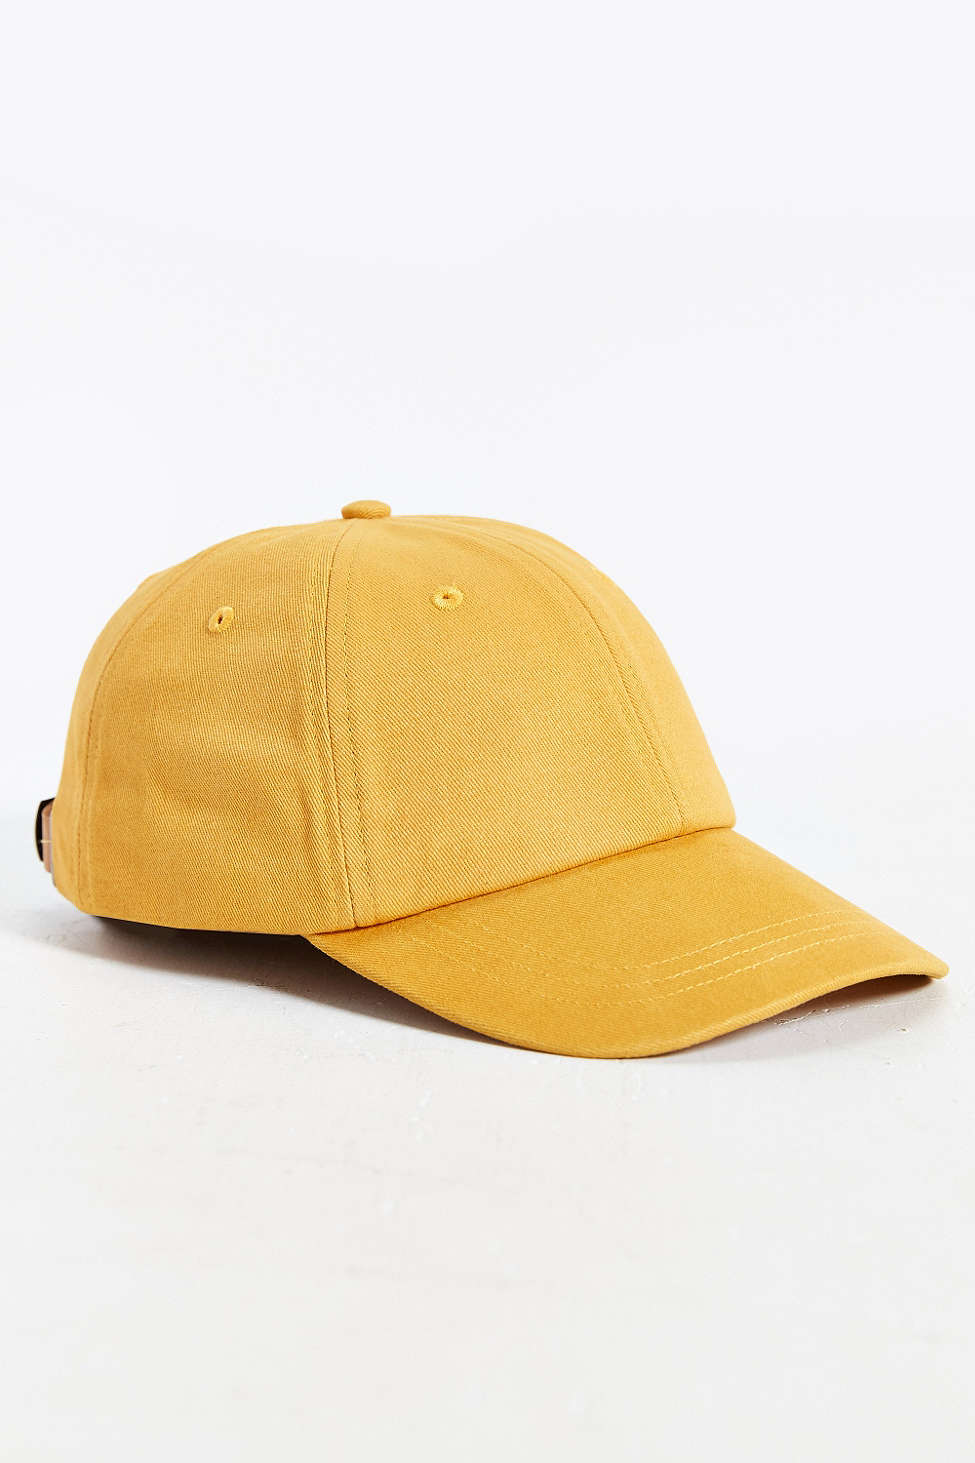 Cute Baseball Caps, Dad Hat Trend, Womens Accessories